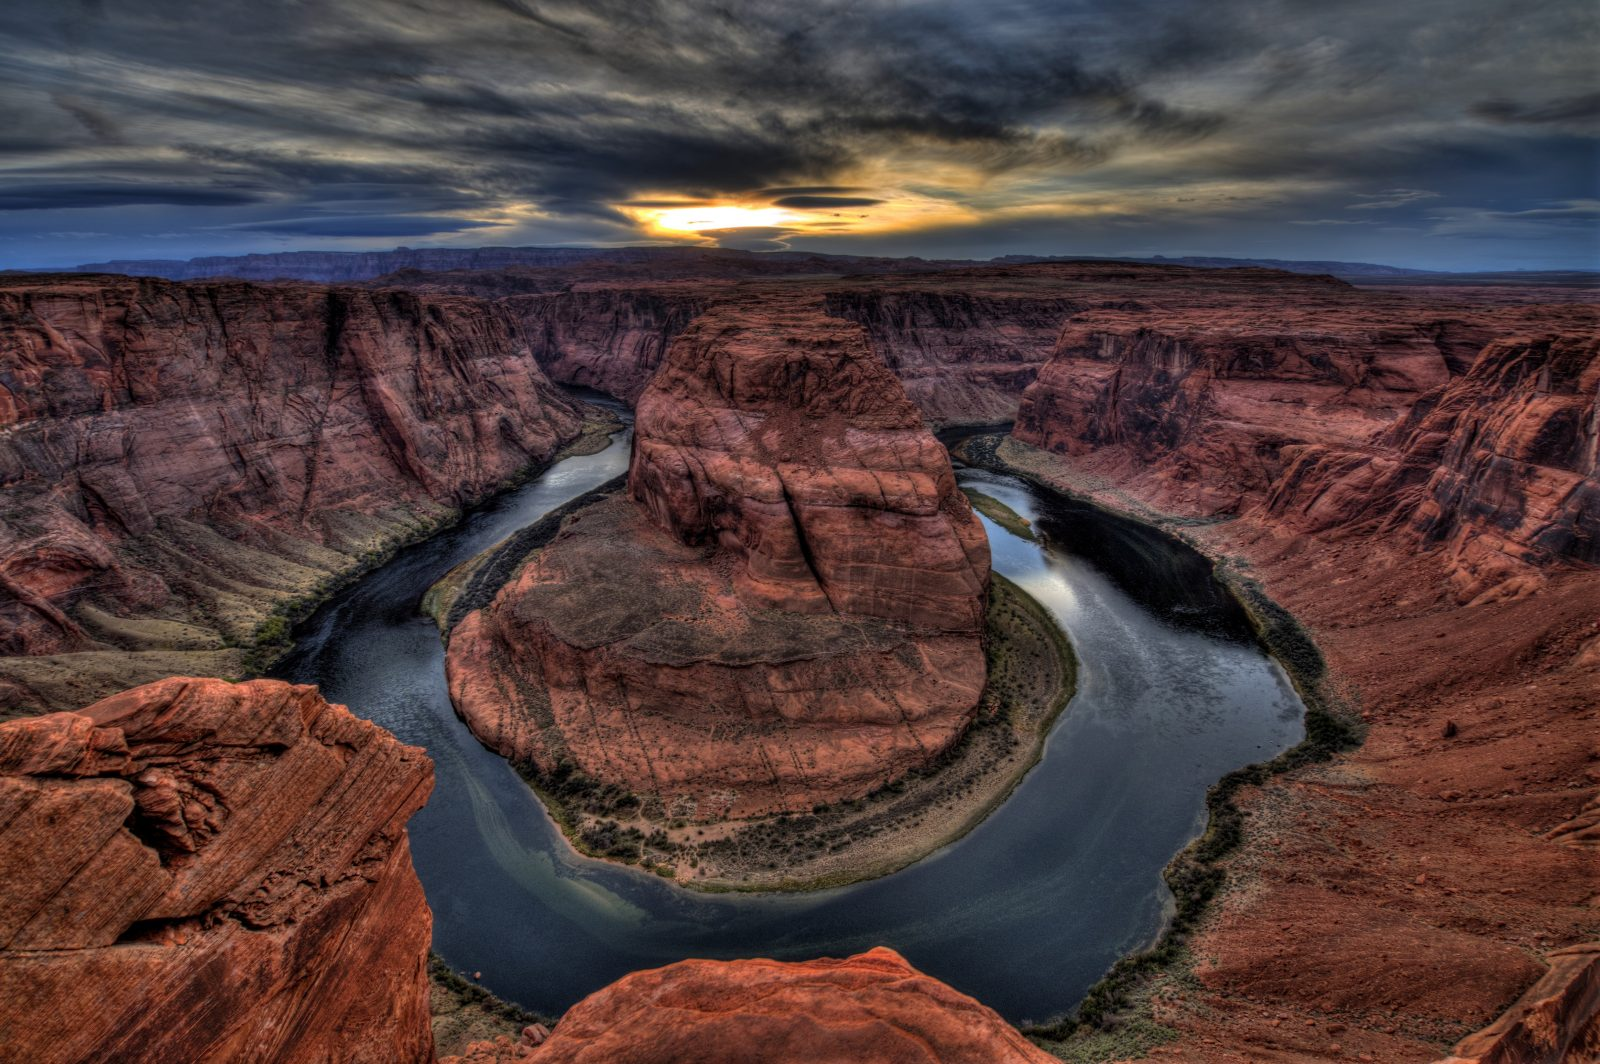 The Day's End At Horseshoe Bend